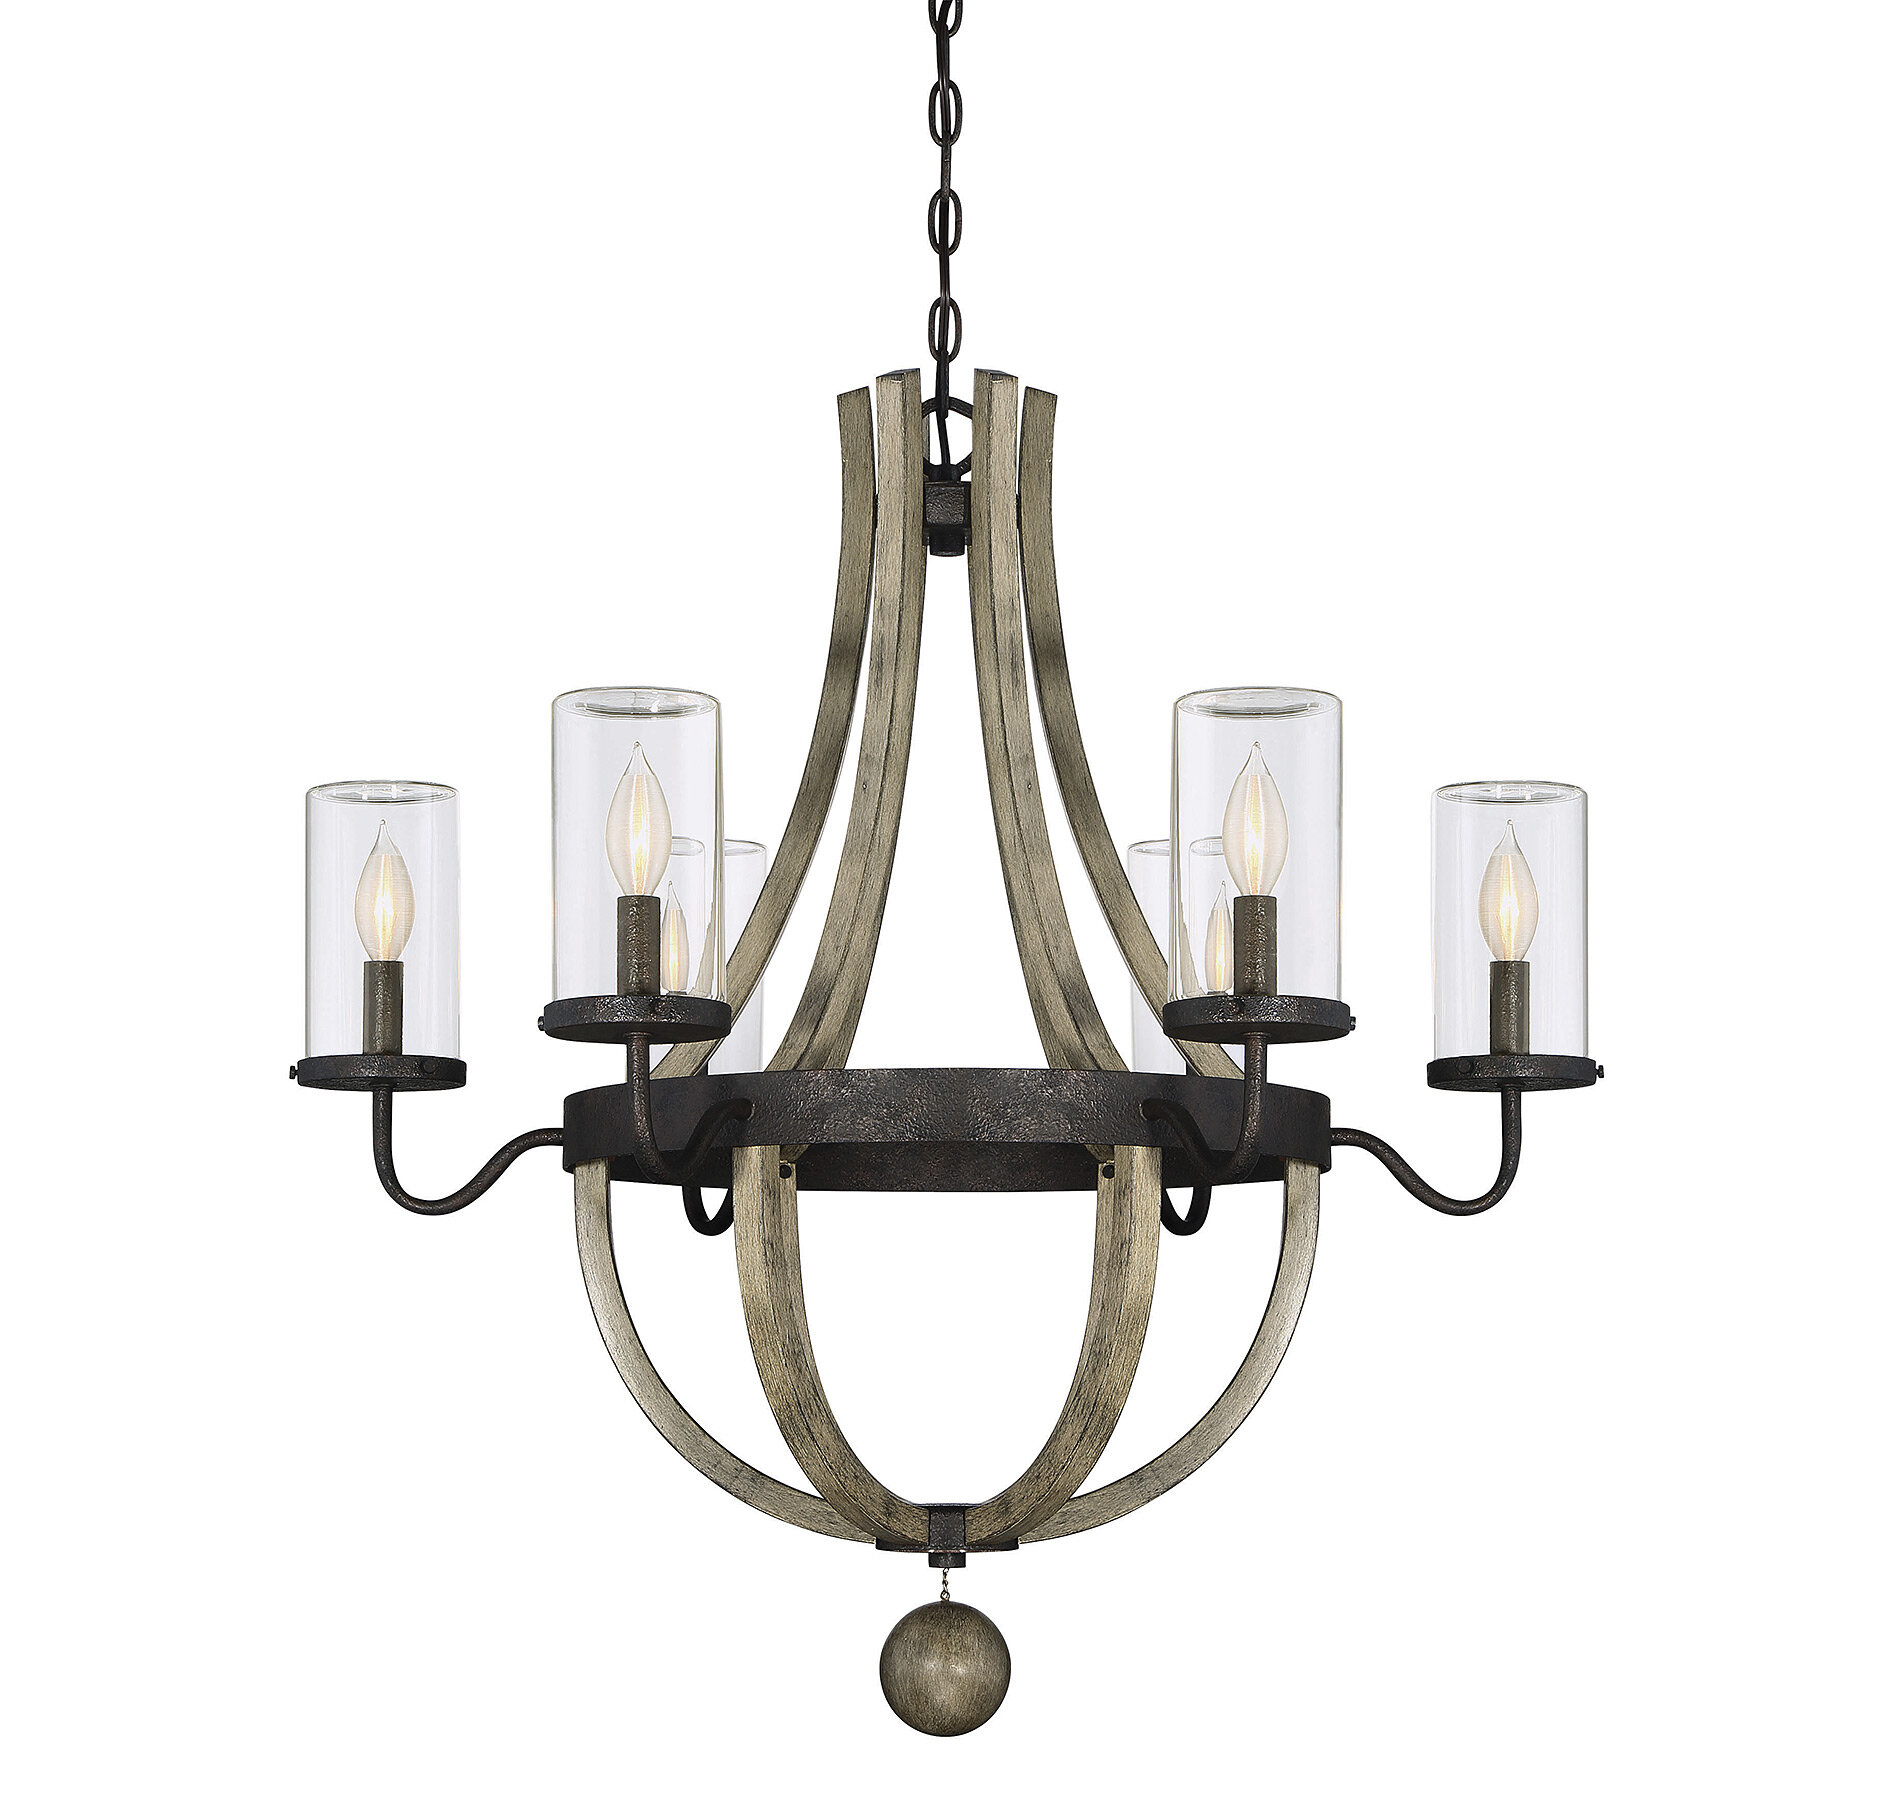 contemporary lighting using for modern lbc of luxury chandelier fixtures ideas fluorescent track light pretty design chandeliers pendant inexpensive led ceiling commercial home suspended